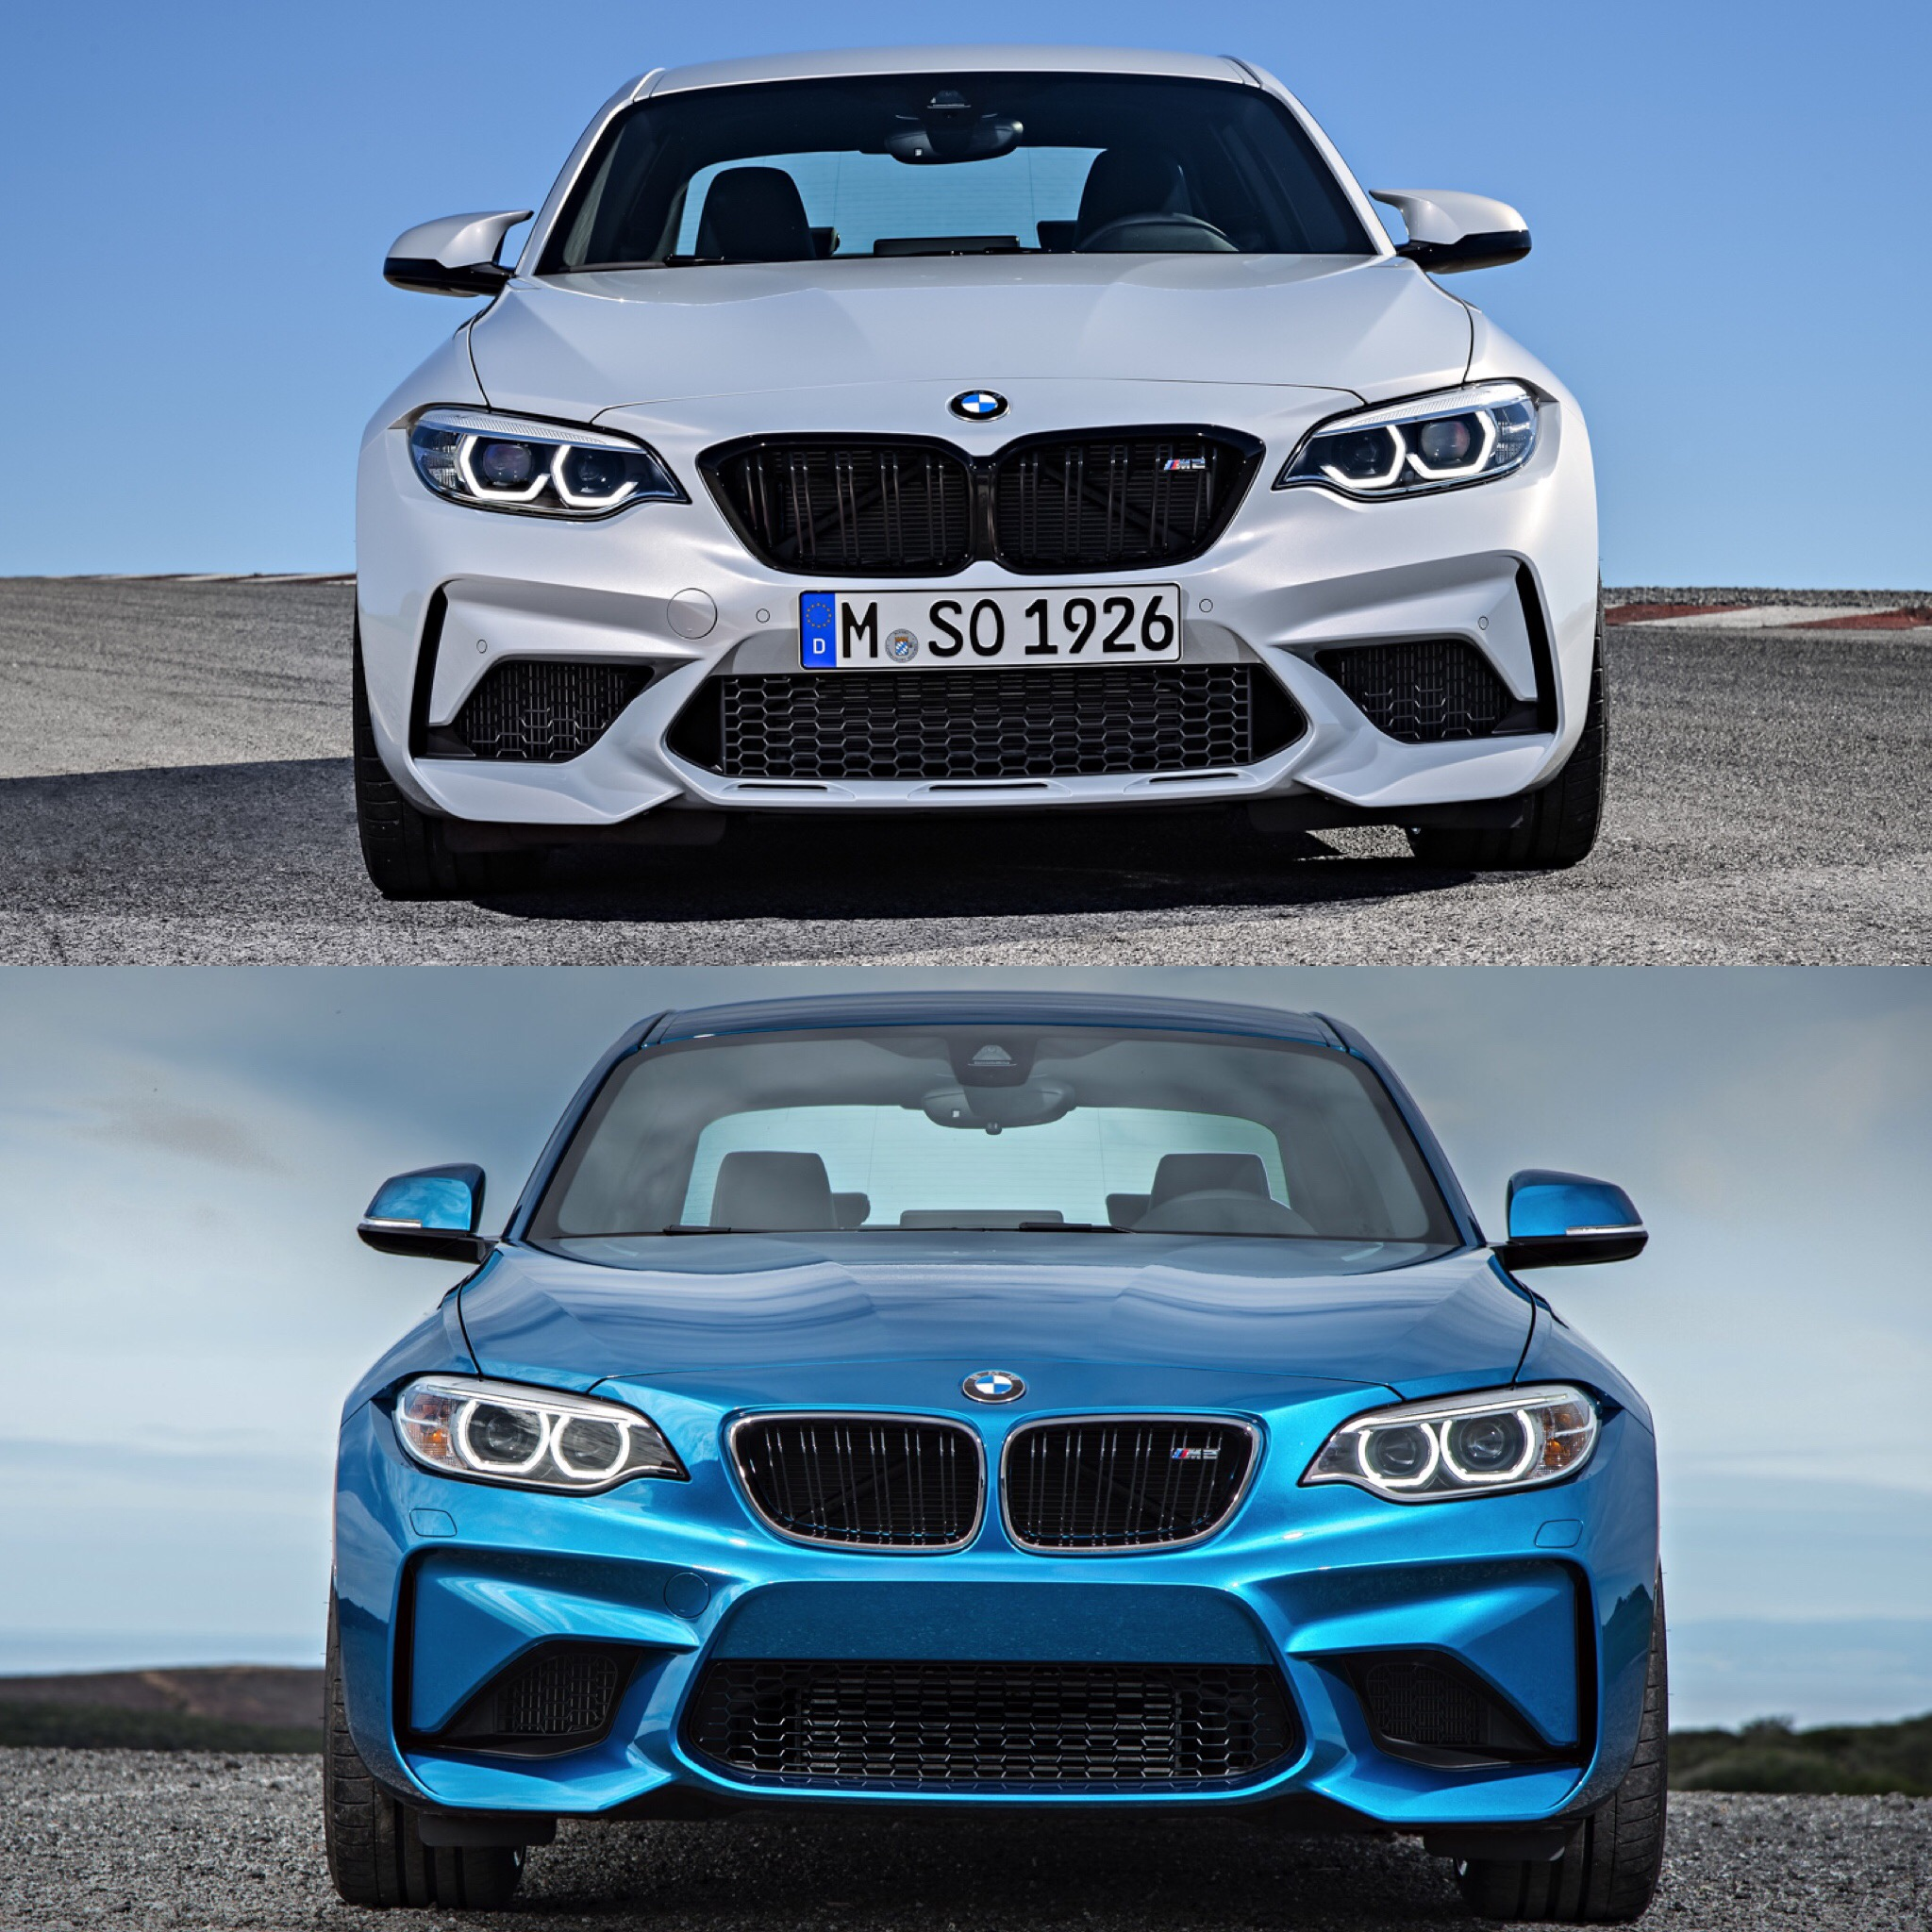 What Would You Like To Know About The Design Of The Bmw M2 Competition